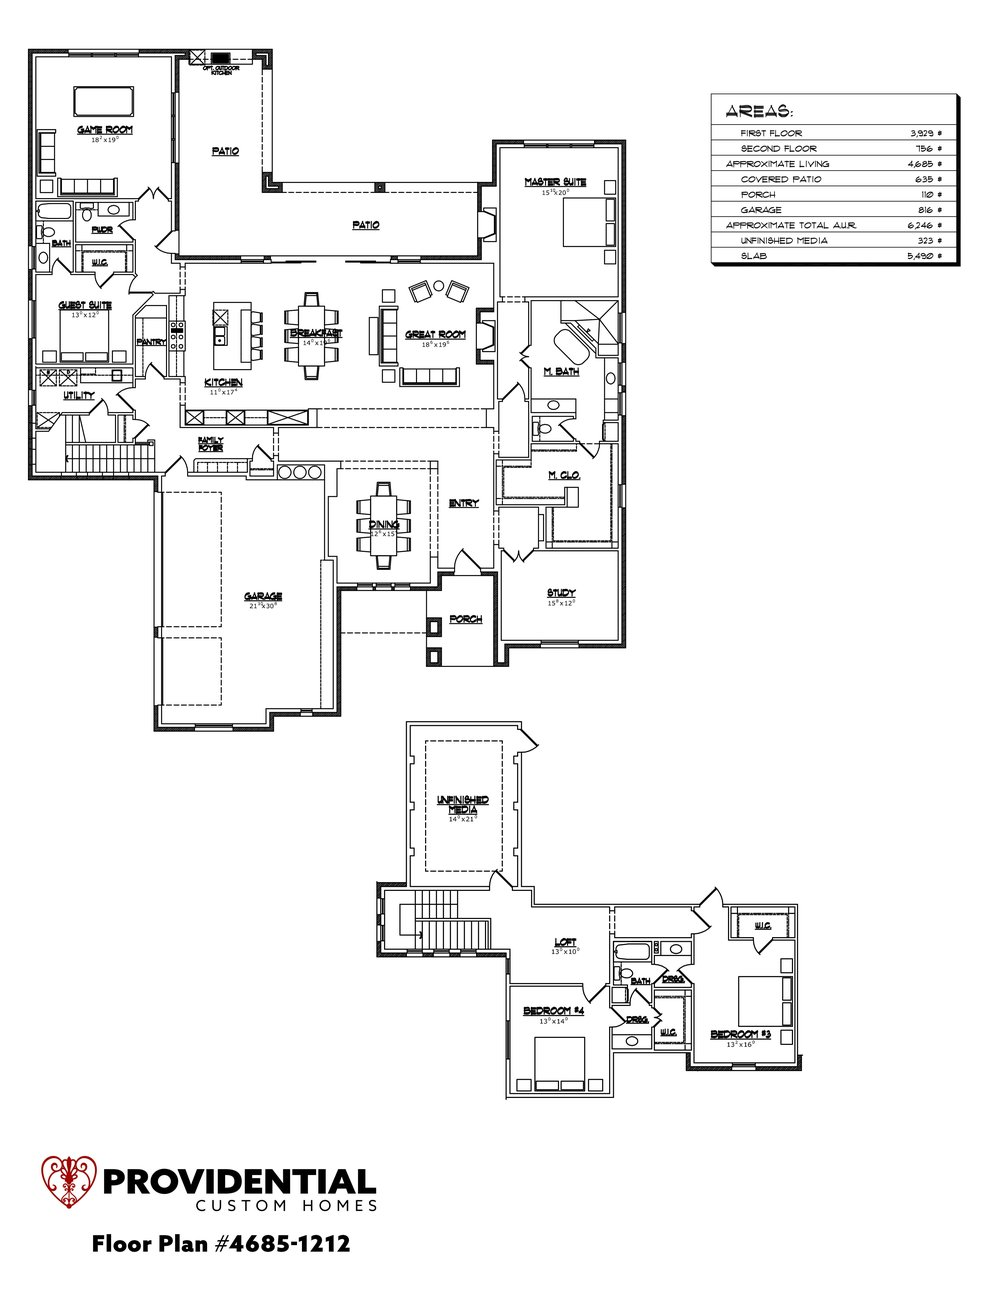 The FLOOR PLAN #4685-1212.jpg